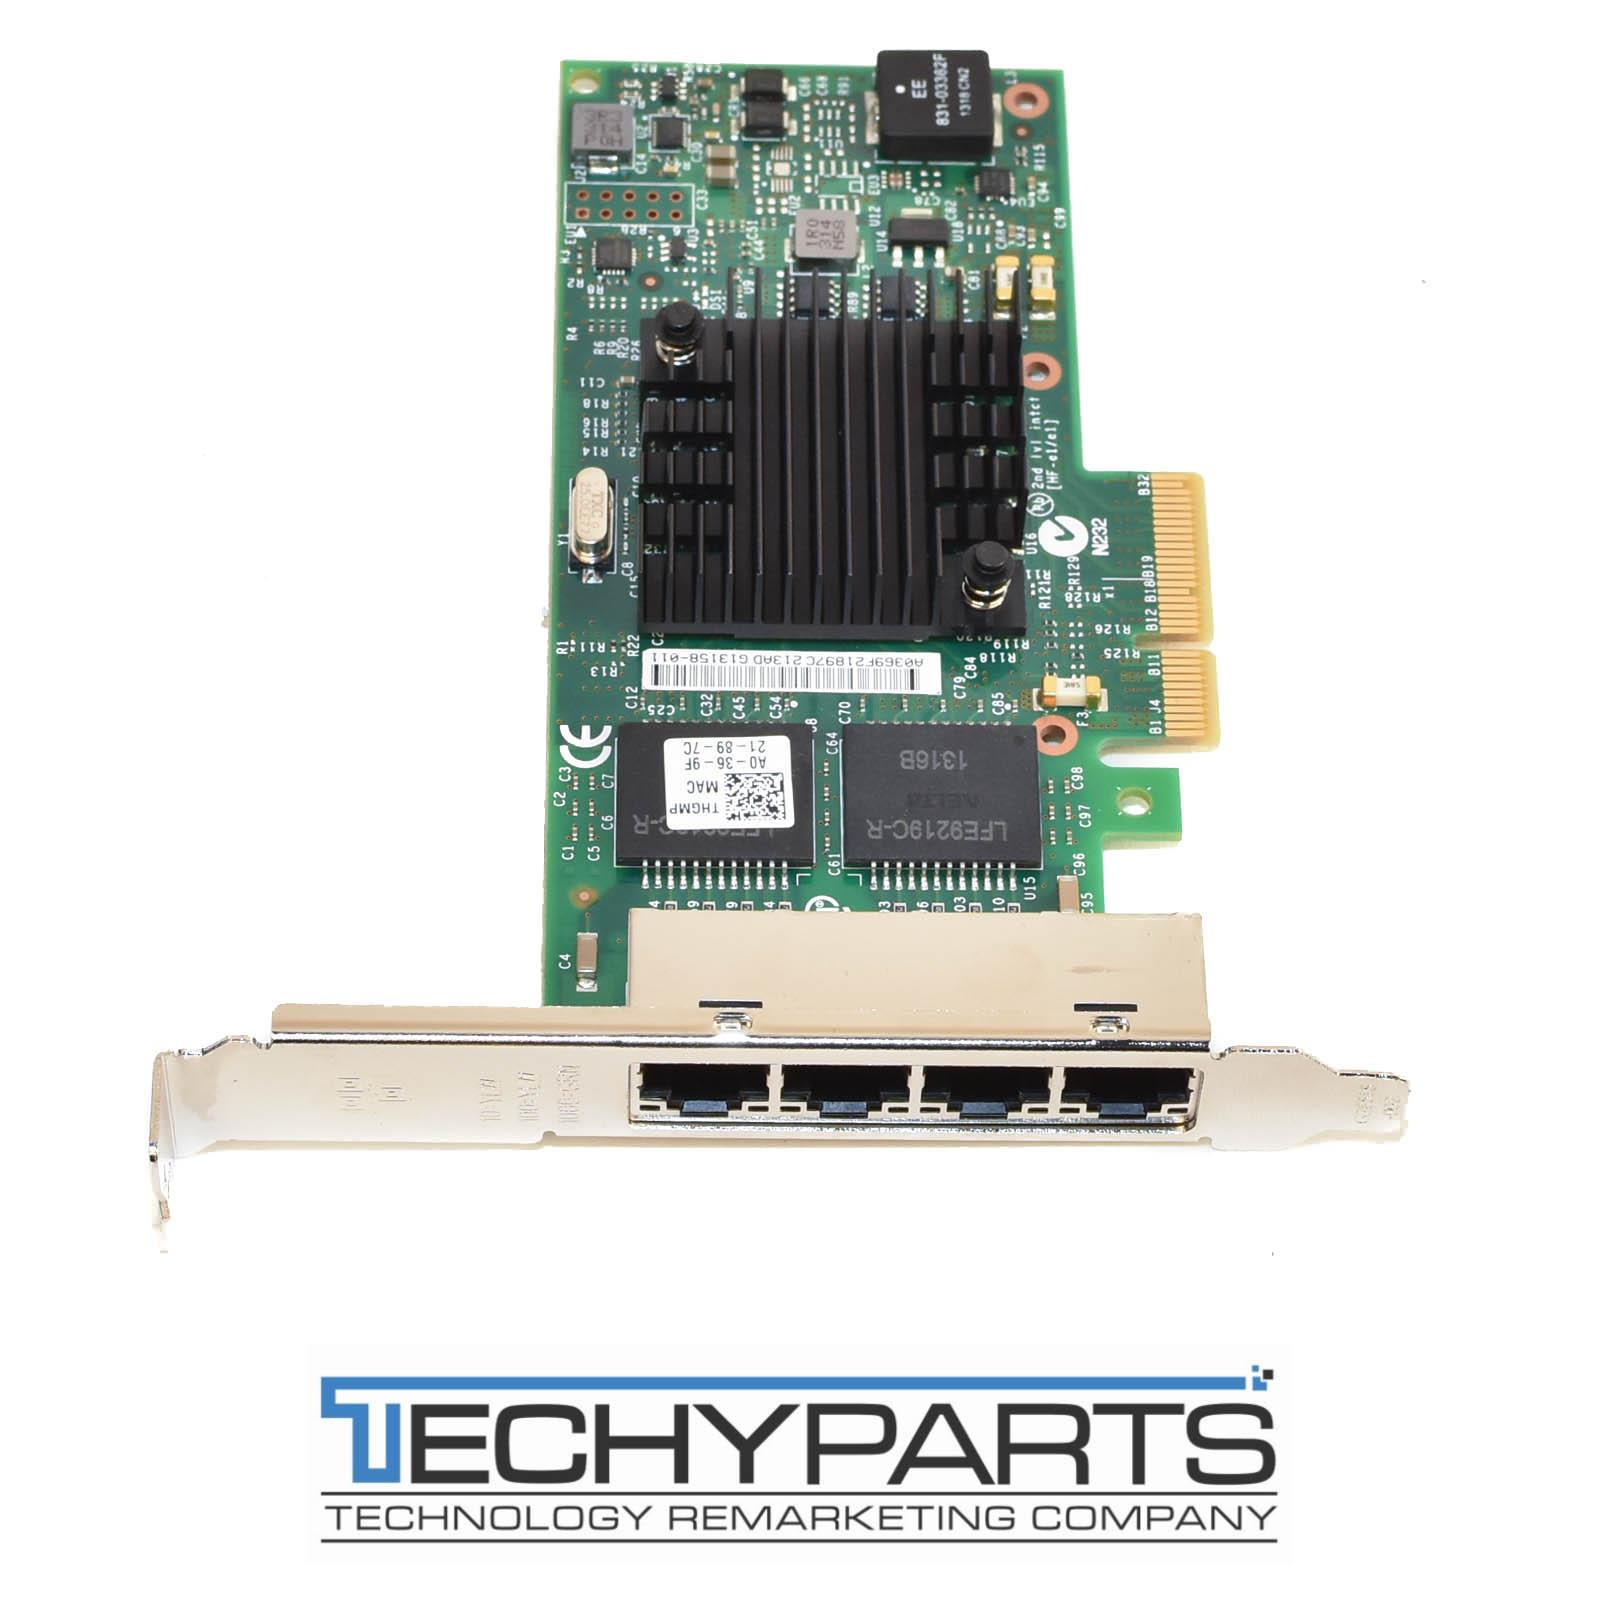 Details about Dell THGMP Intel I350-T4 4-Port 1Gbps Ethernet PCI-e x4  Full-height Server NIC